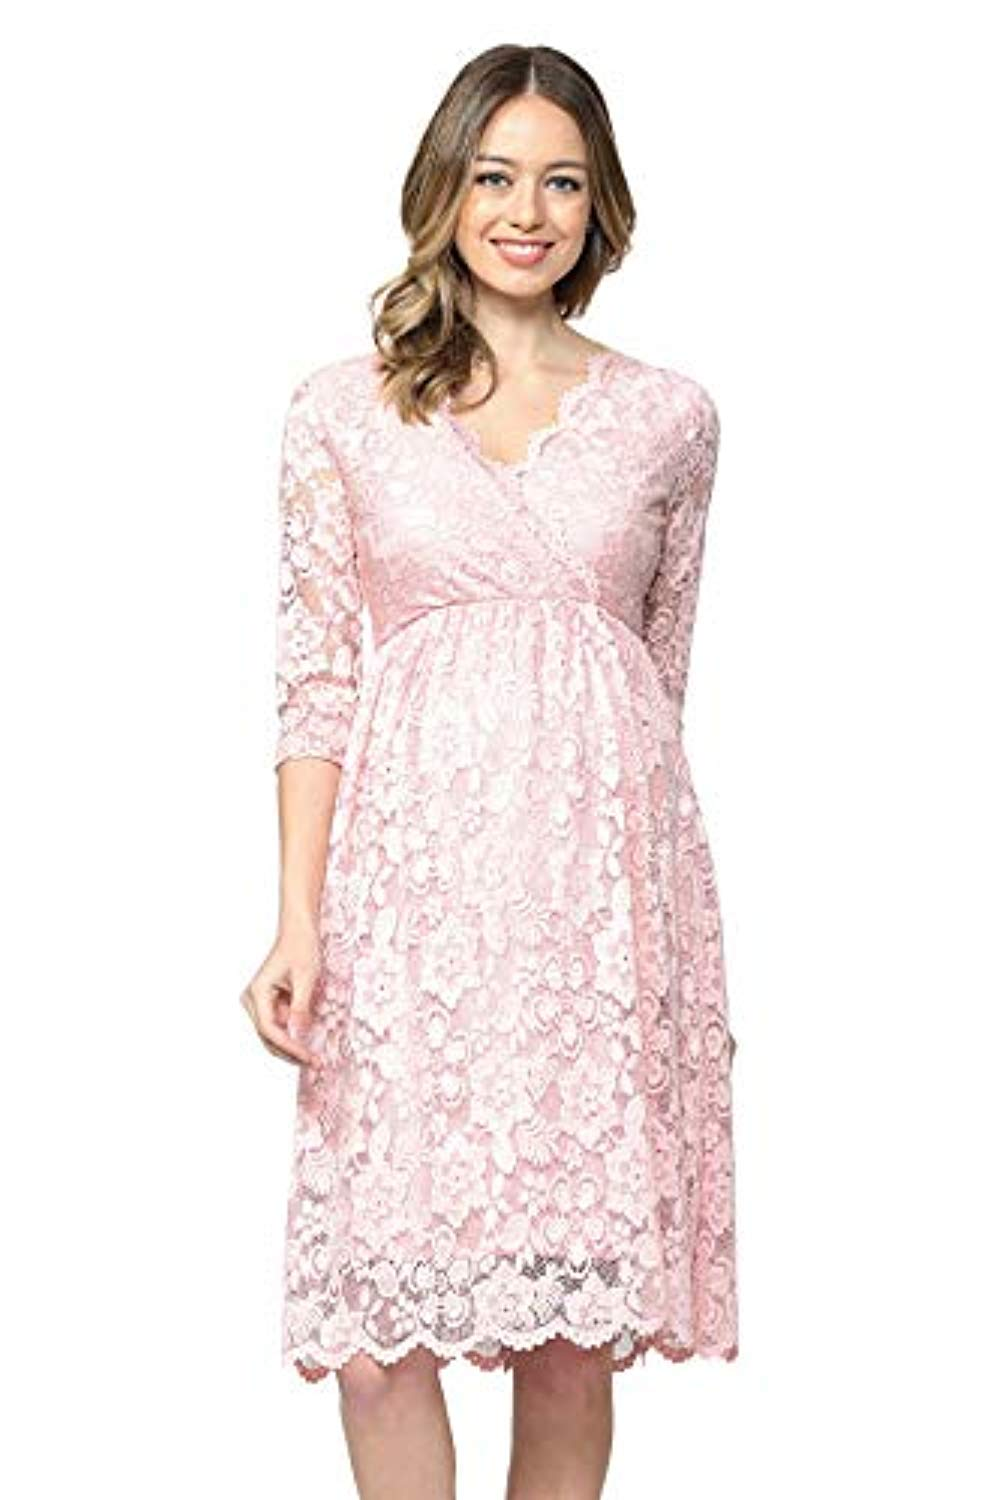 Scalloped Pink Lace Baby Shower Dress - Mommylicious